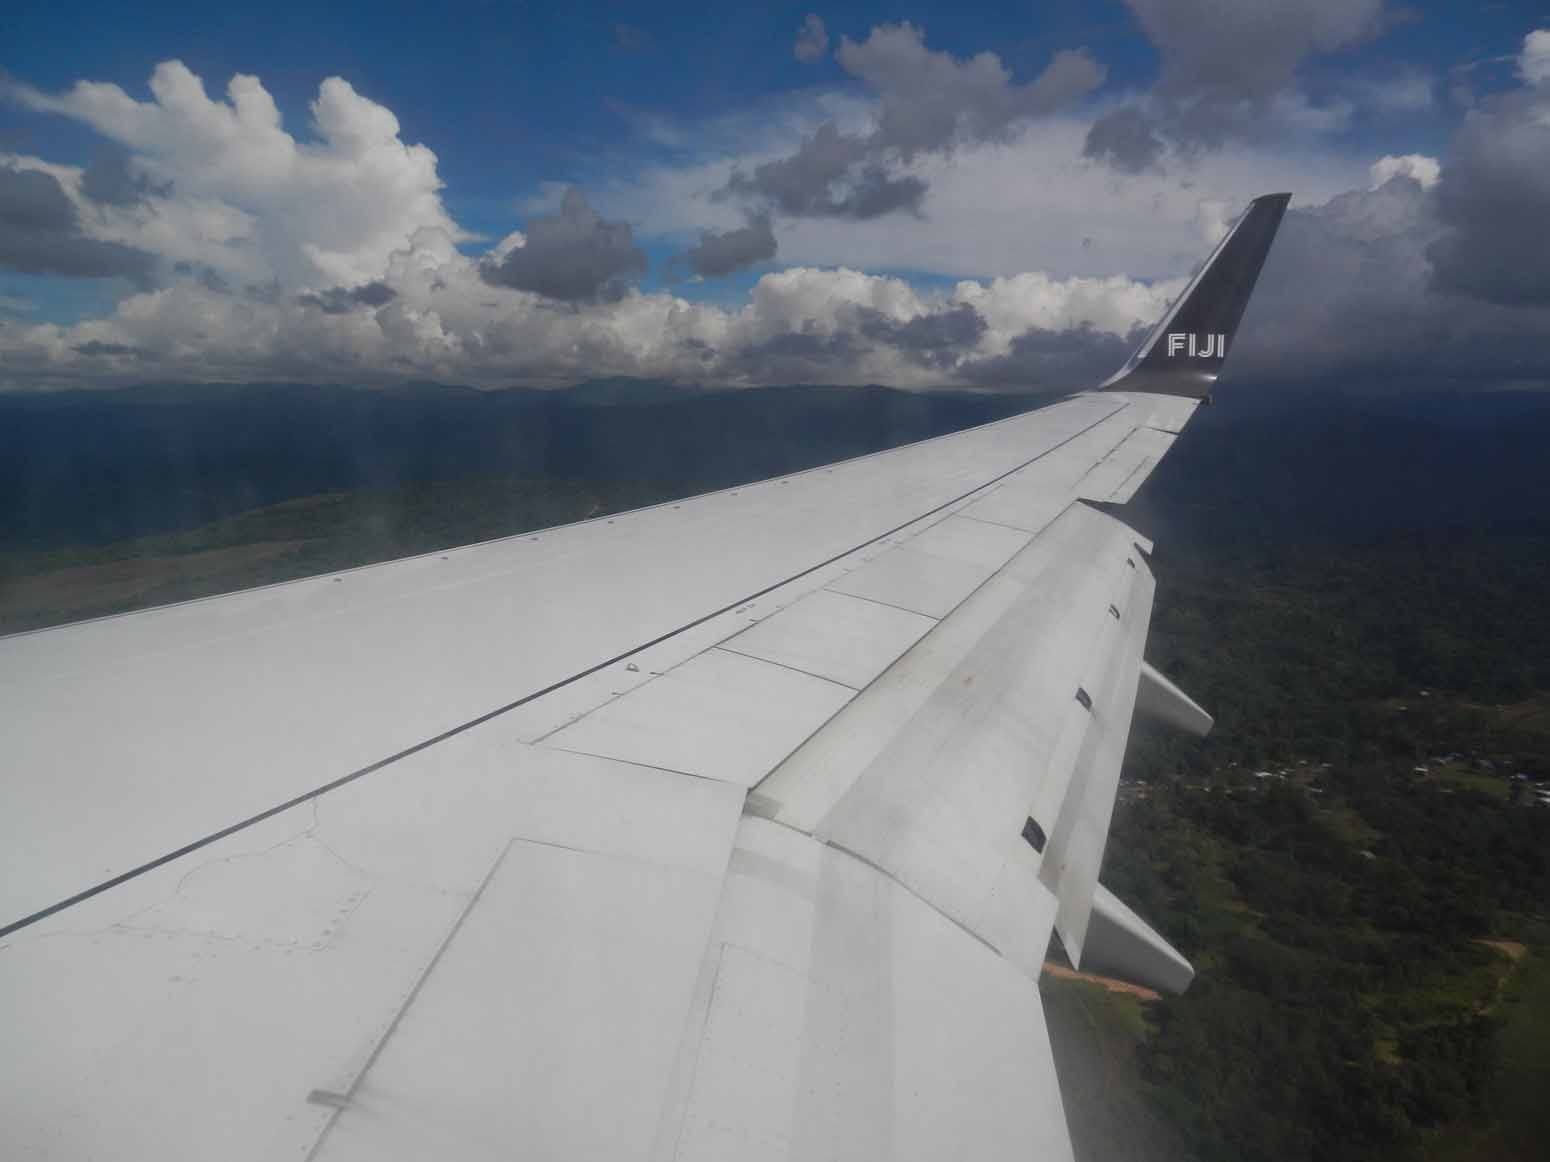 Fiji Airways connecting the Pacific islands